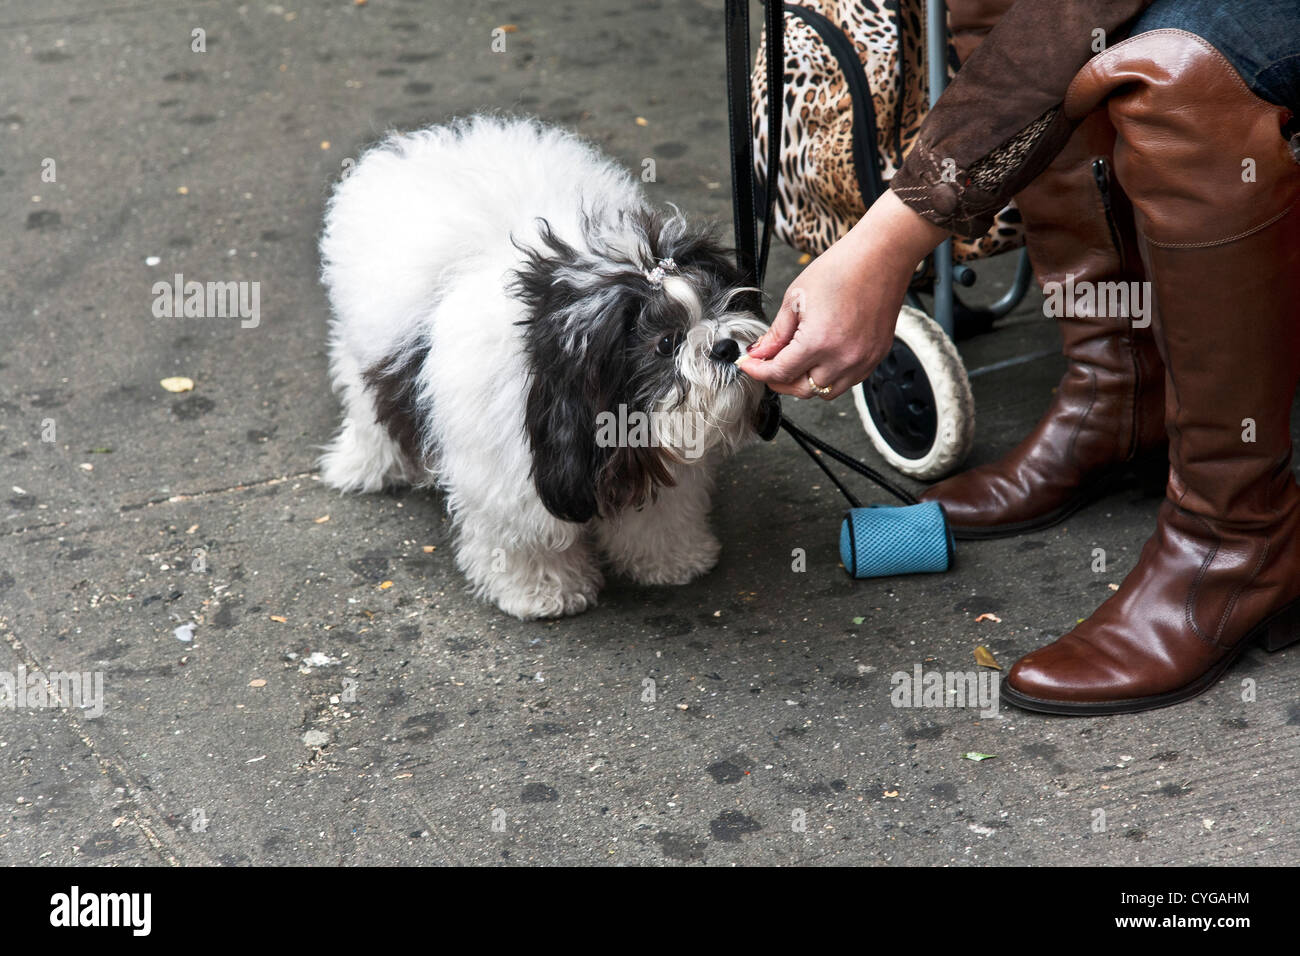 woman wearing expensive leather boots sitting on sidewalk feeds pizza morsel to her small fluffy black & white - Stock Image